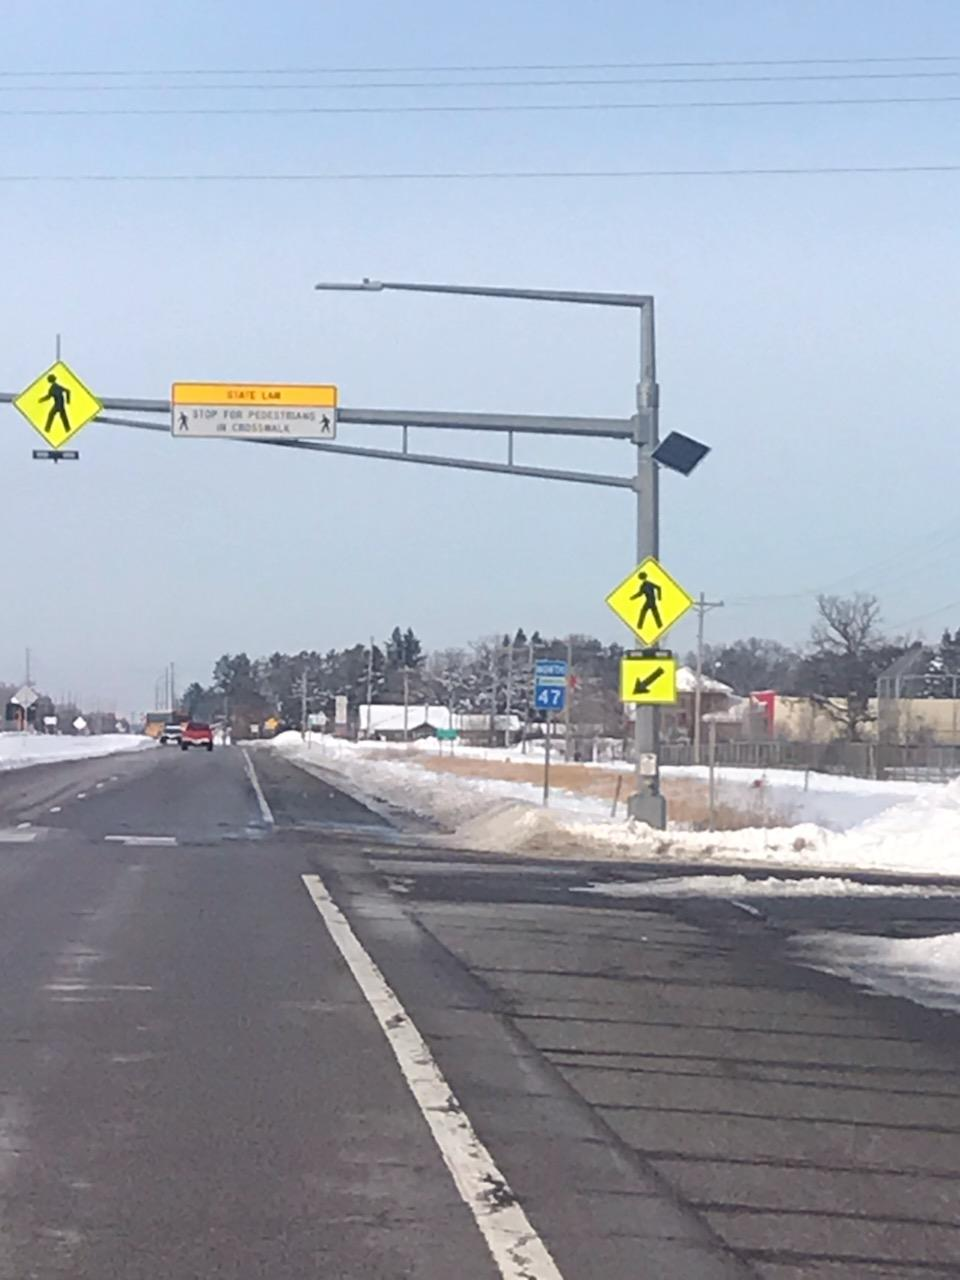 New crosswalk signs for Highway 47.